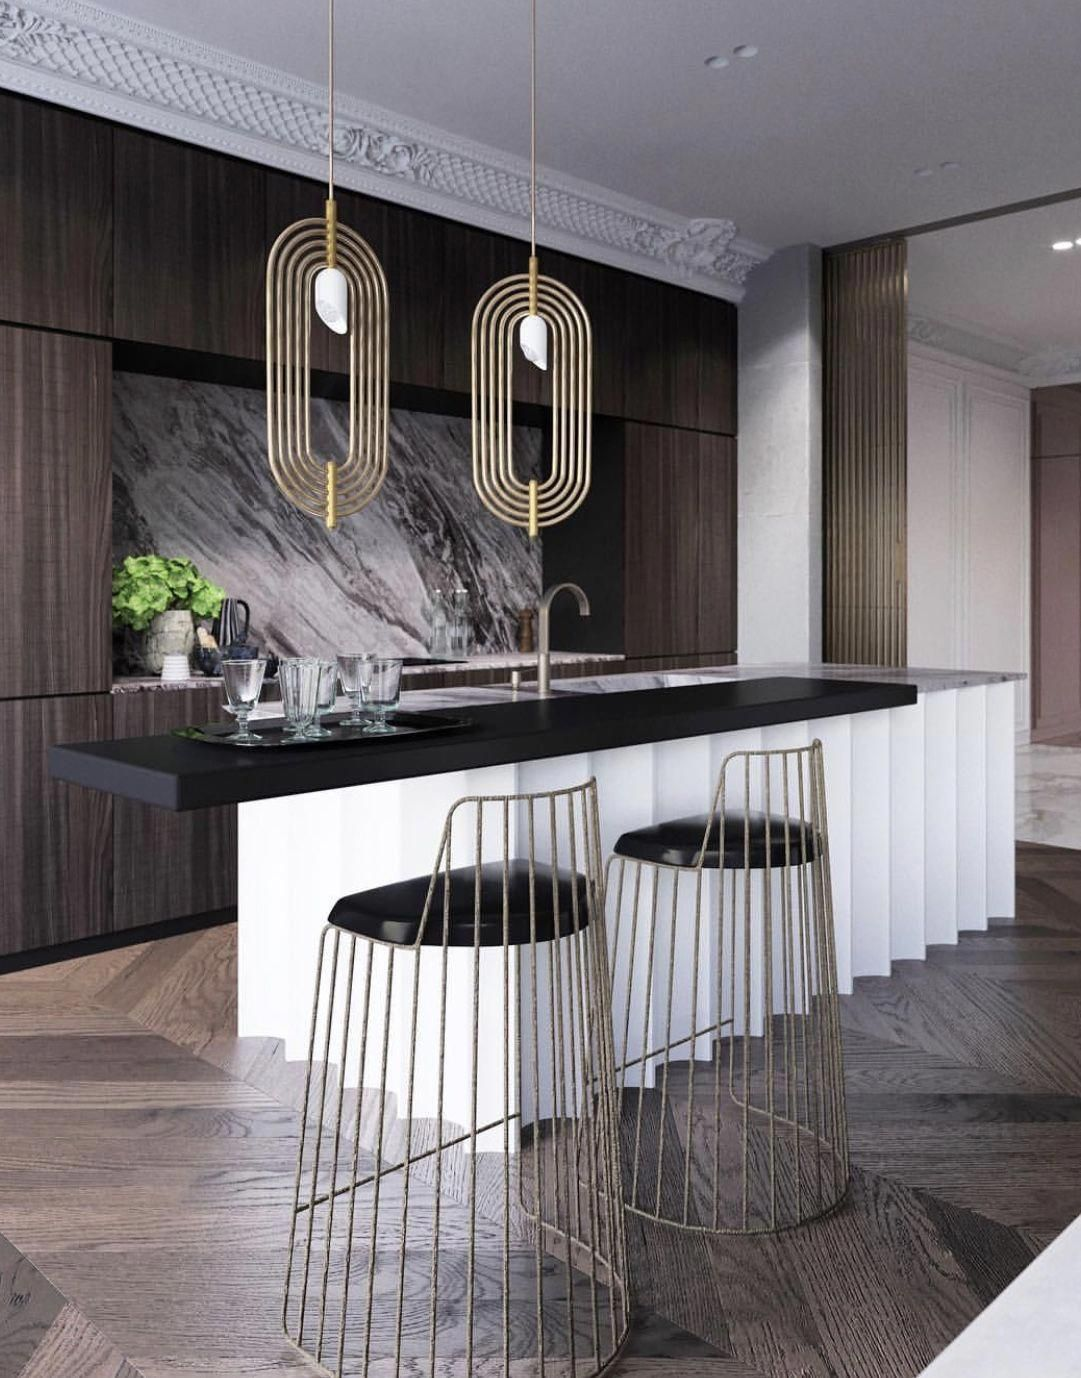 High End Kitchen Design Images 63 Best Luxury Kitchen Design Will Inspire You High End Kitchen